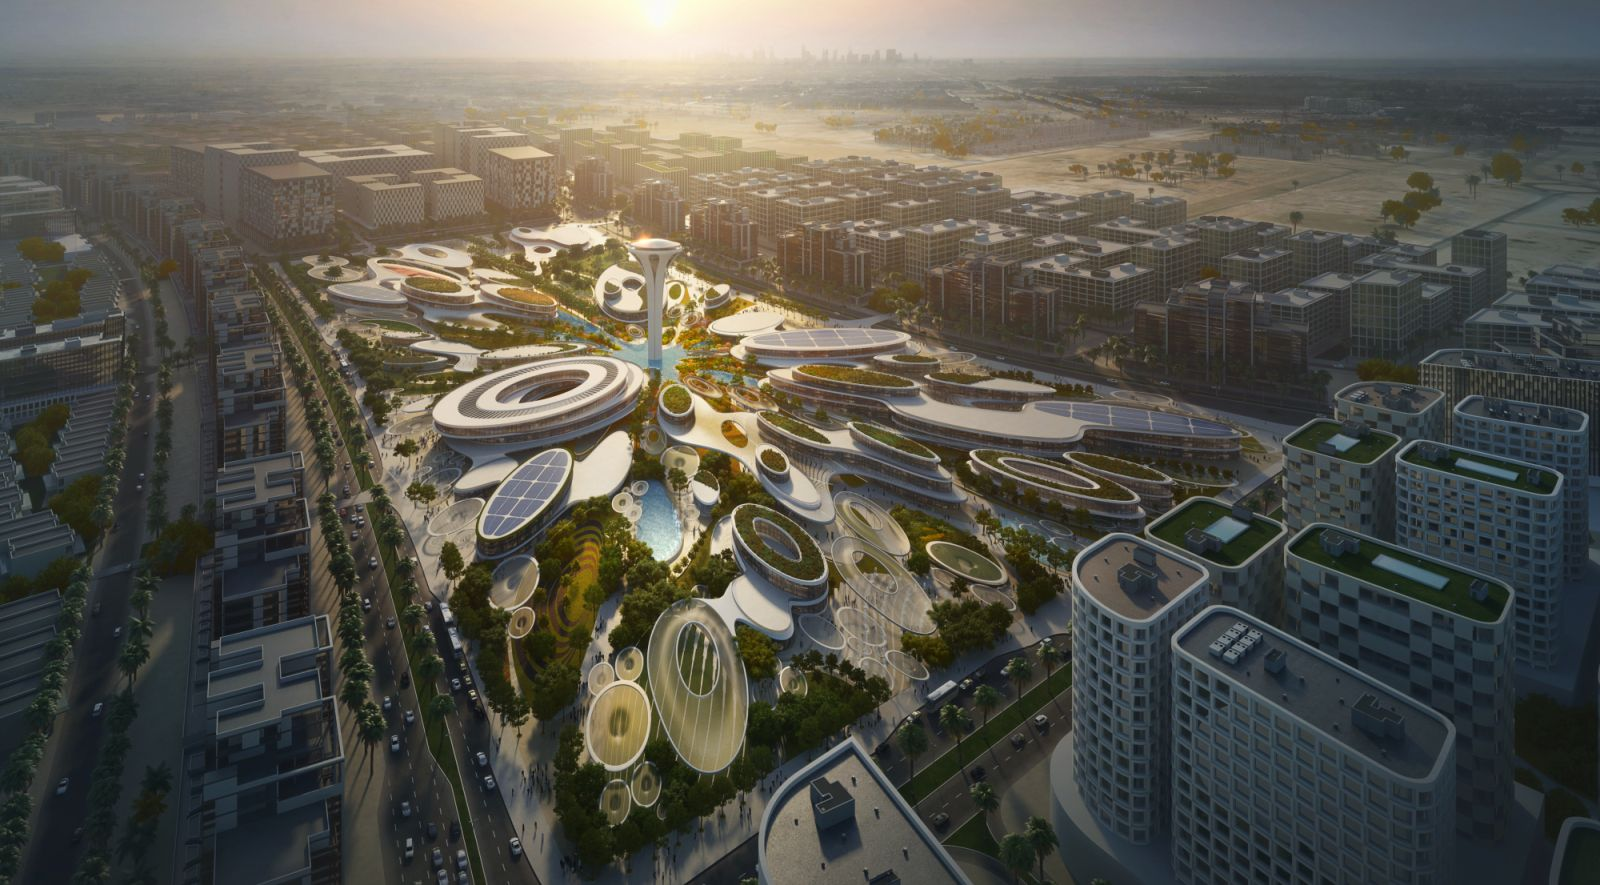 Aljada s central hub by zaha hadid architects 00 for Architecture 00